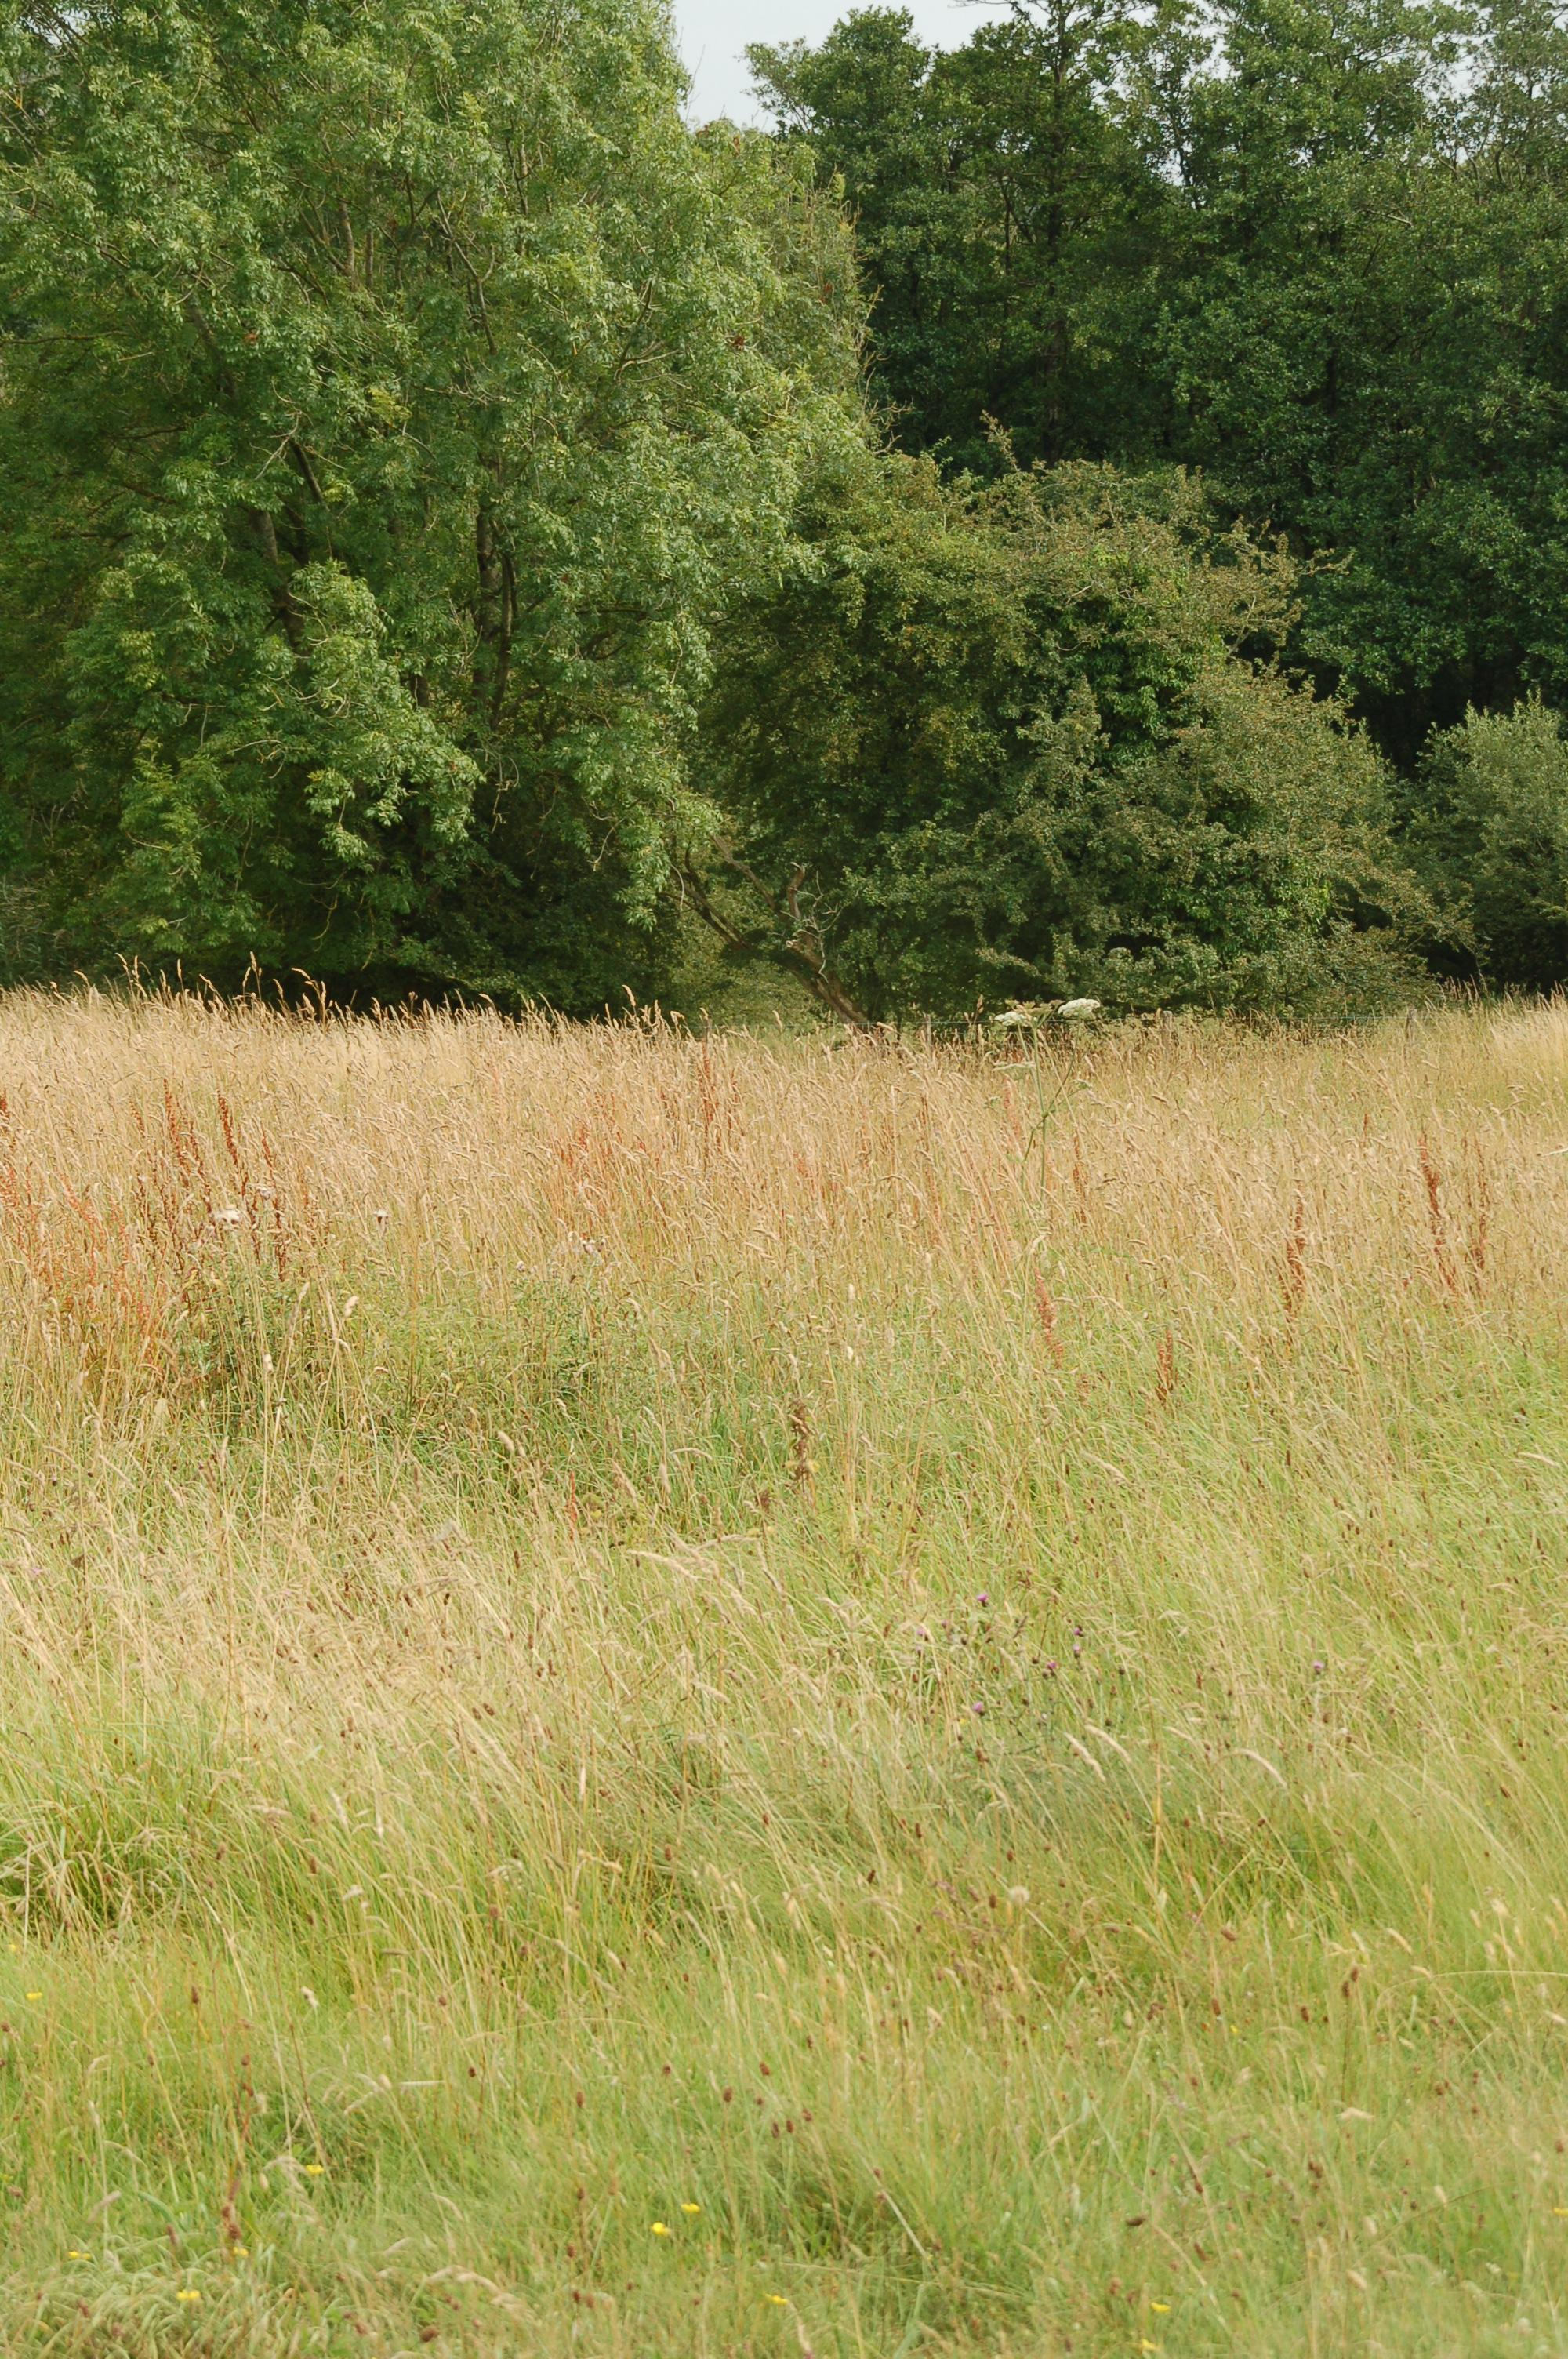 Grassland scrub and woodland at Gait Barrows National Nature Reserve